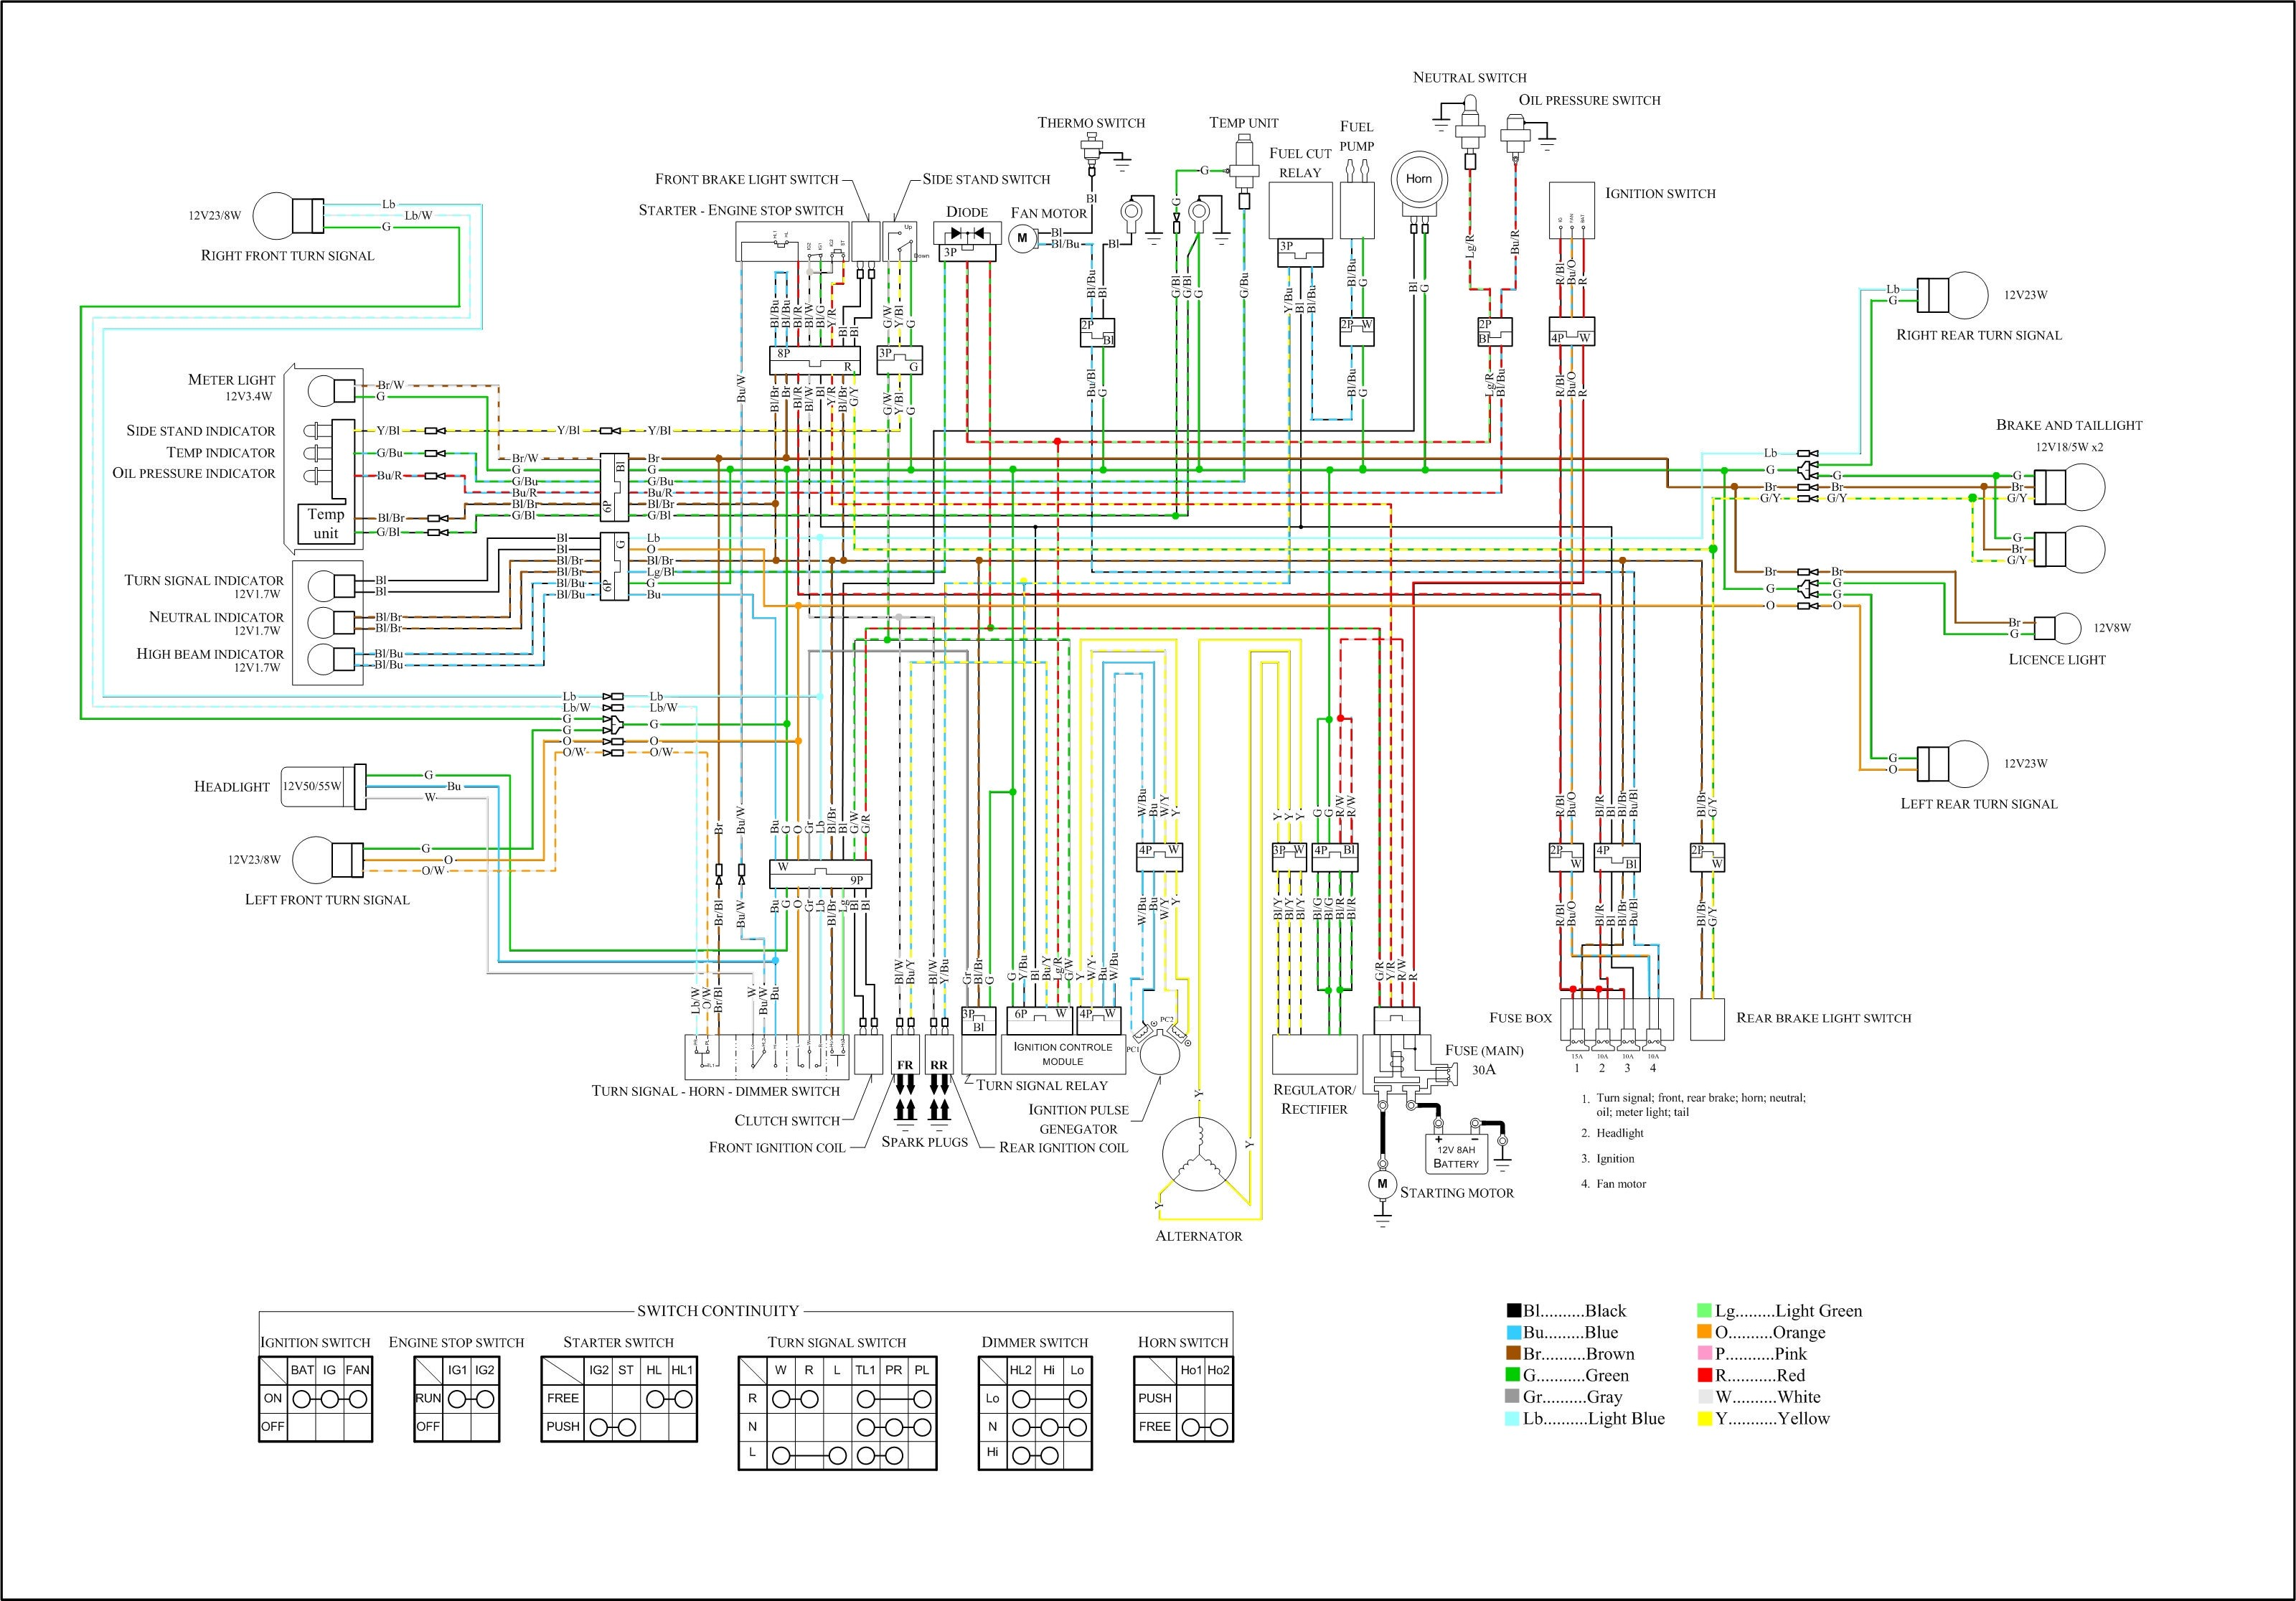 Vt500 Honda Shadow Wiring Diagram - Wiring Diagrams Hubs on sincgars radio configurations diagrams, led circuit diagrams, engine diagrams, switch diagrams, friendship bracelet diagrams, pinout diagrams, smart car diagrams, electrical diagrams, motor diagrams, lighting diagrams, hvac diagrams, transformer diagrams, battery diagrams, honda motorcycle repair diagrams, electronic circuit diagrams, internet of things diagrams, series and parallel circuits diagrams, troubleshooting diagrams, gmc fuse box diagrams, snatch block diagrams,